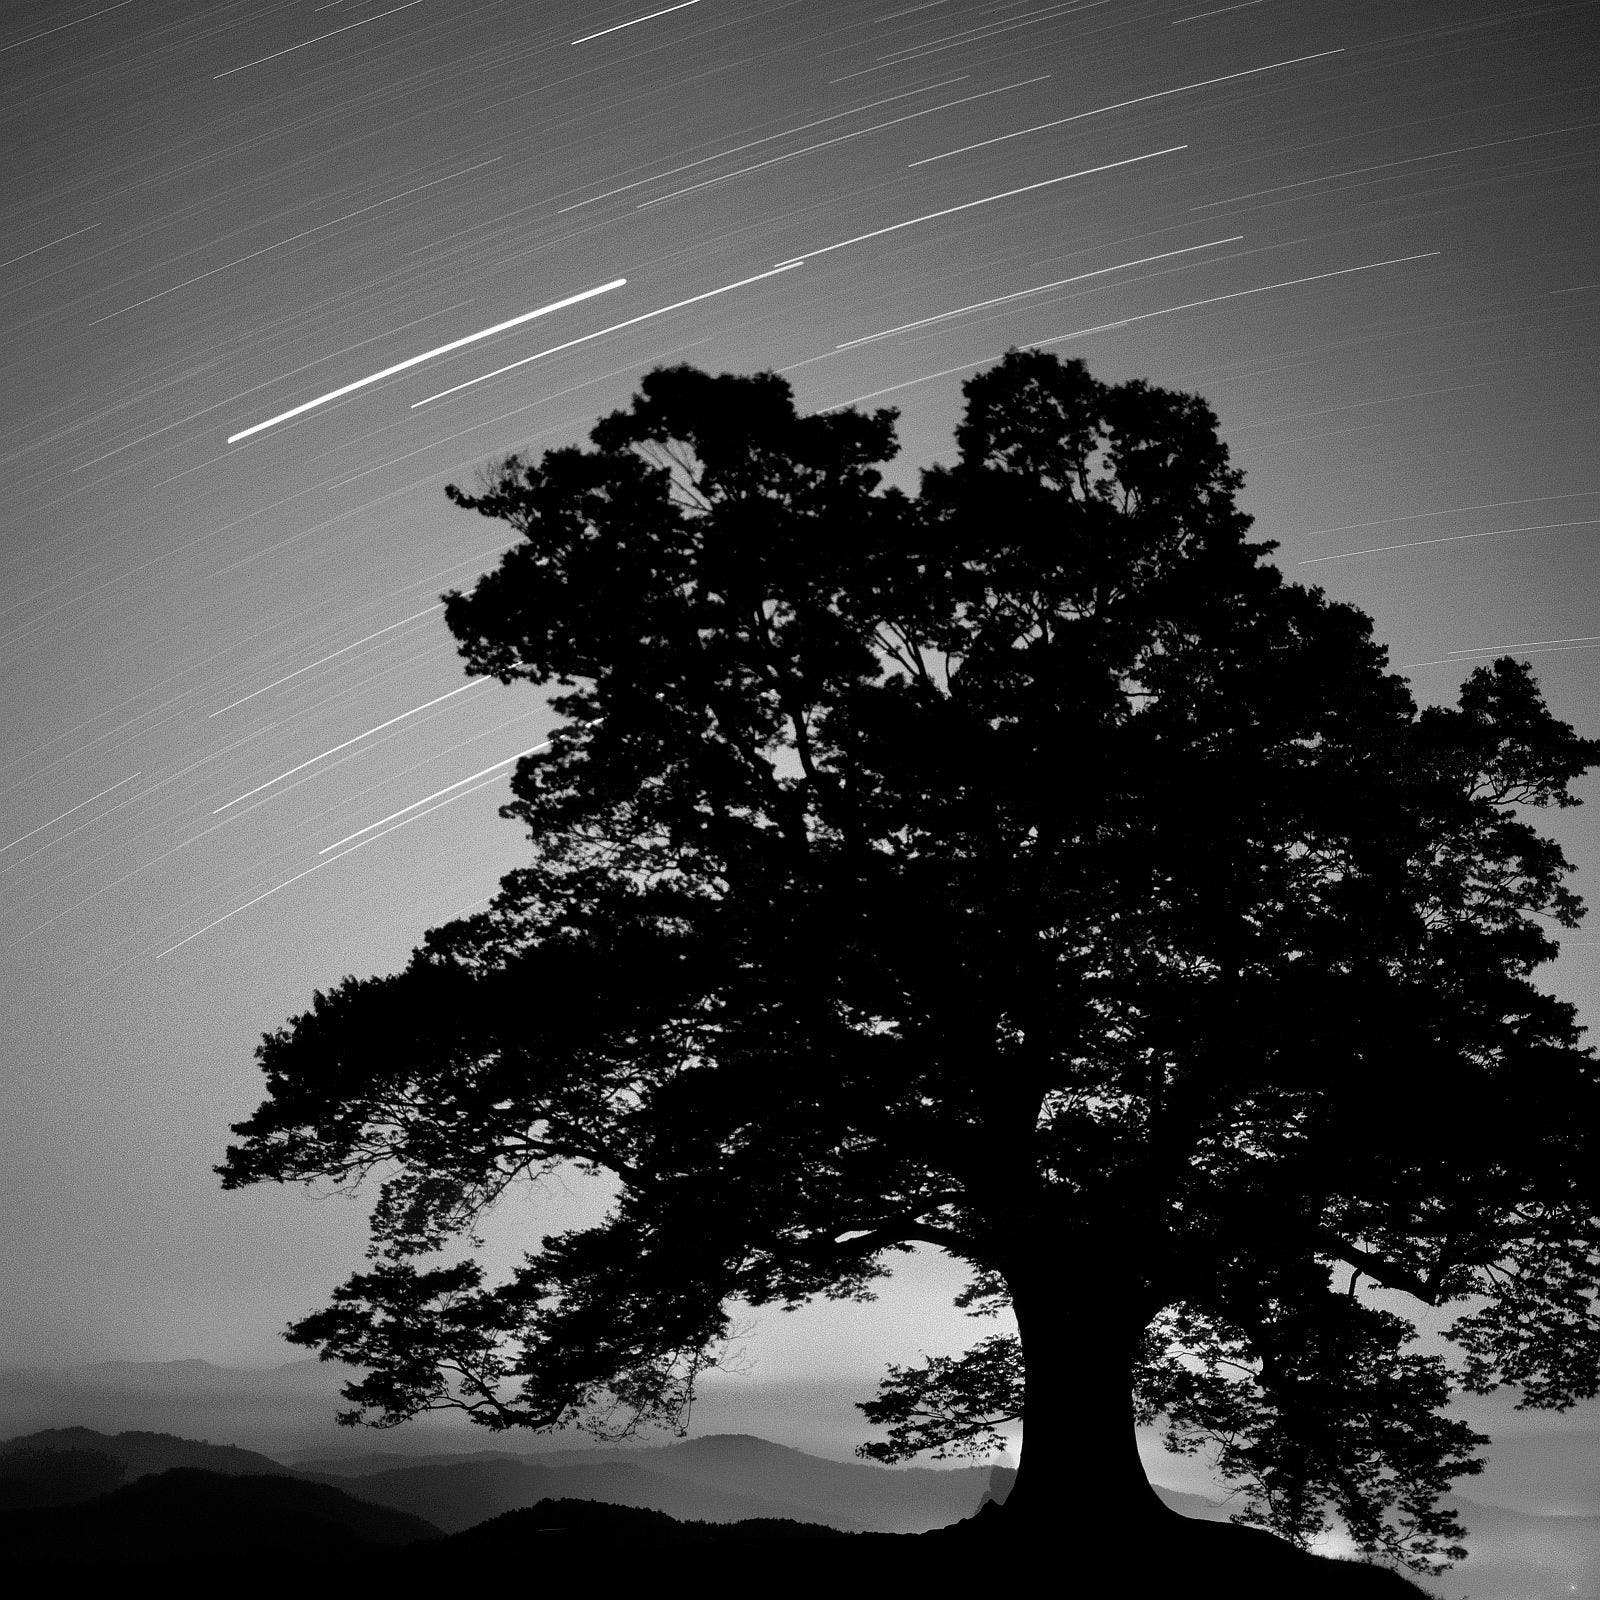 Jisoo Kang - Star Dust - 1st place in SPECIAL LONG EXPOSURE - 4